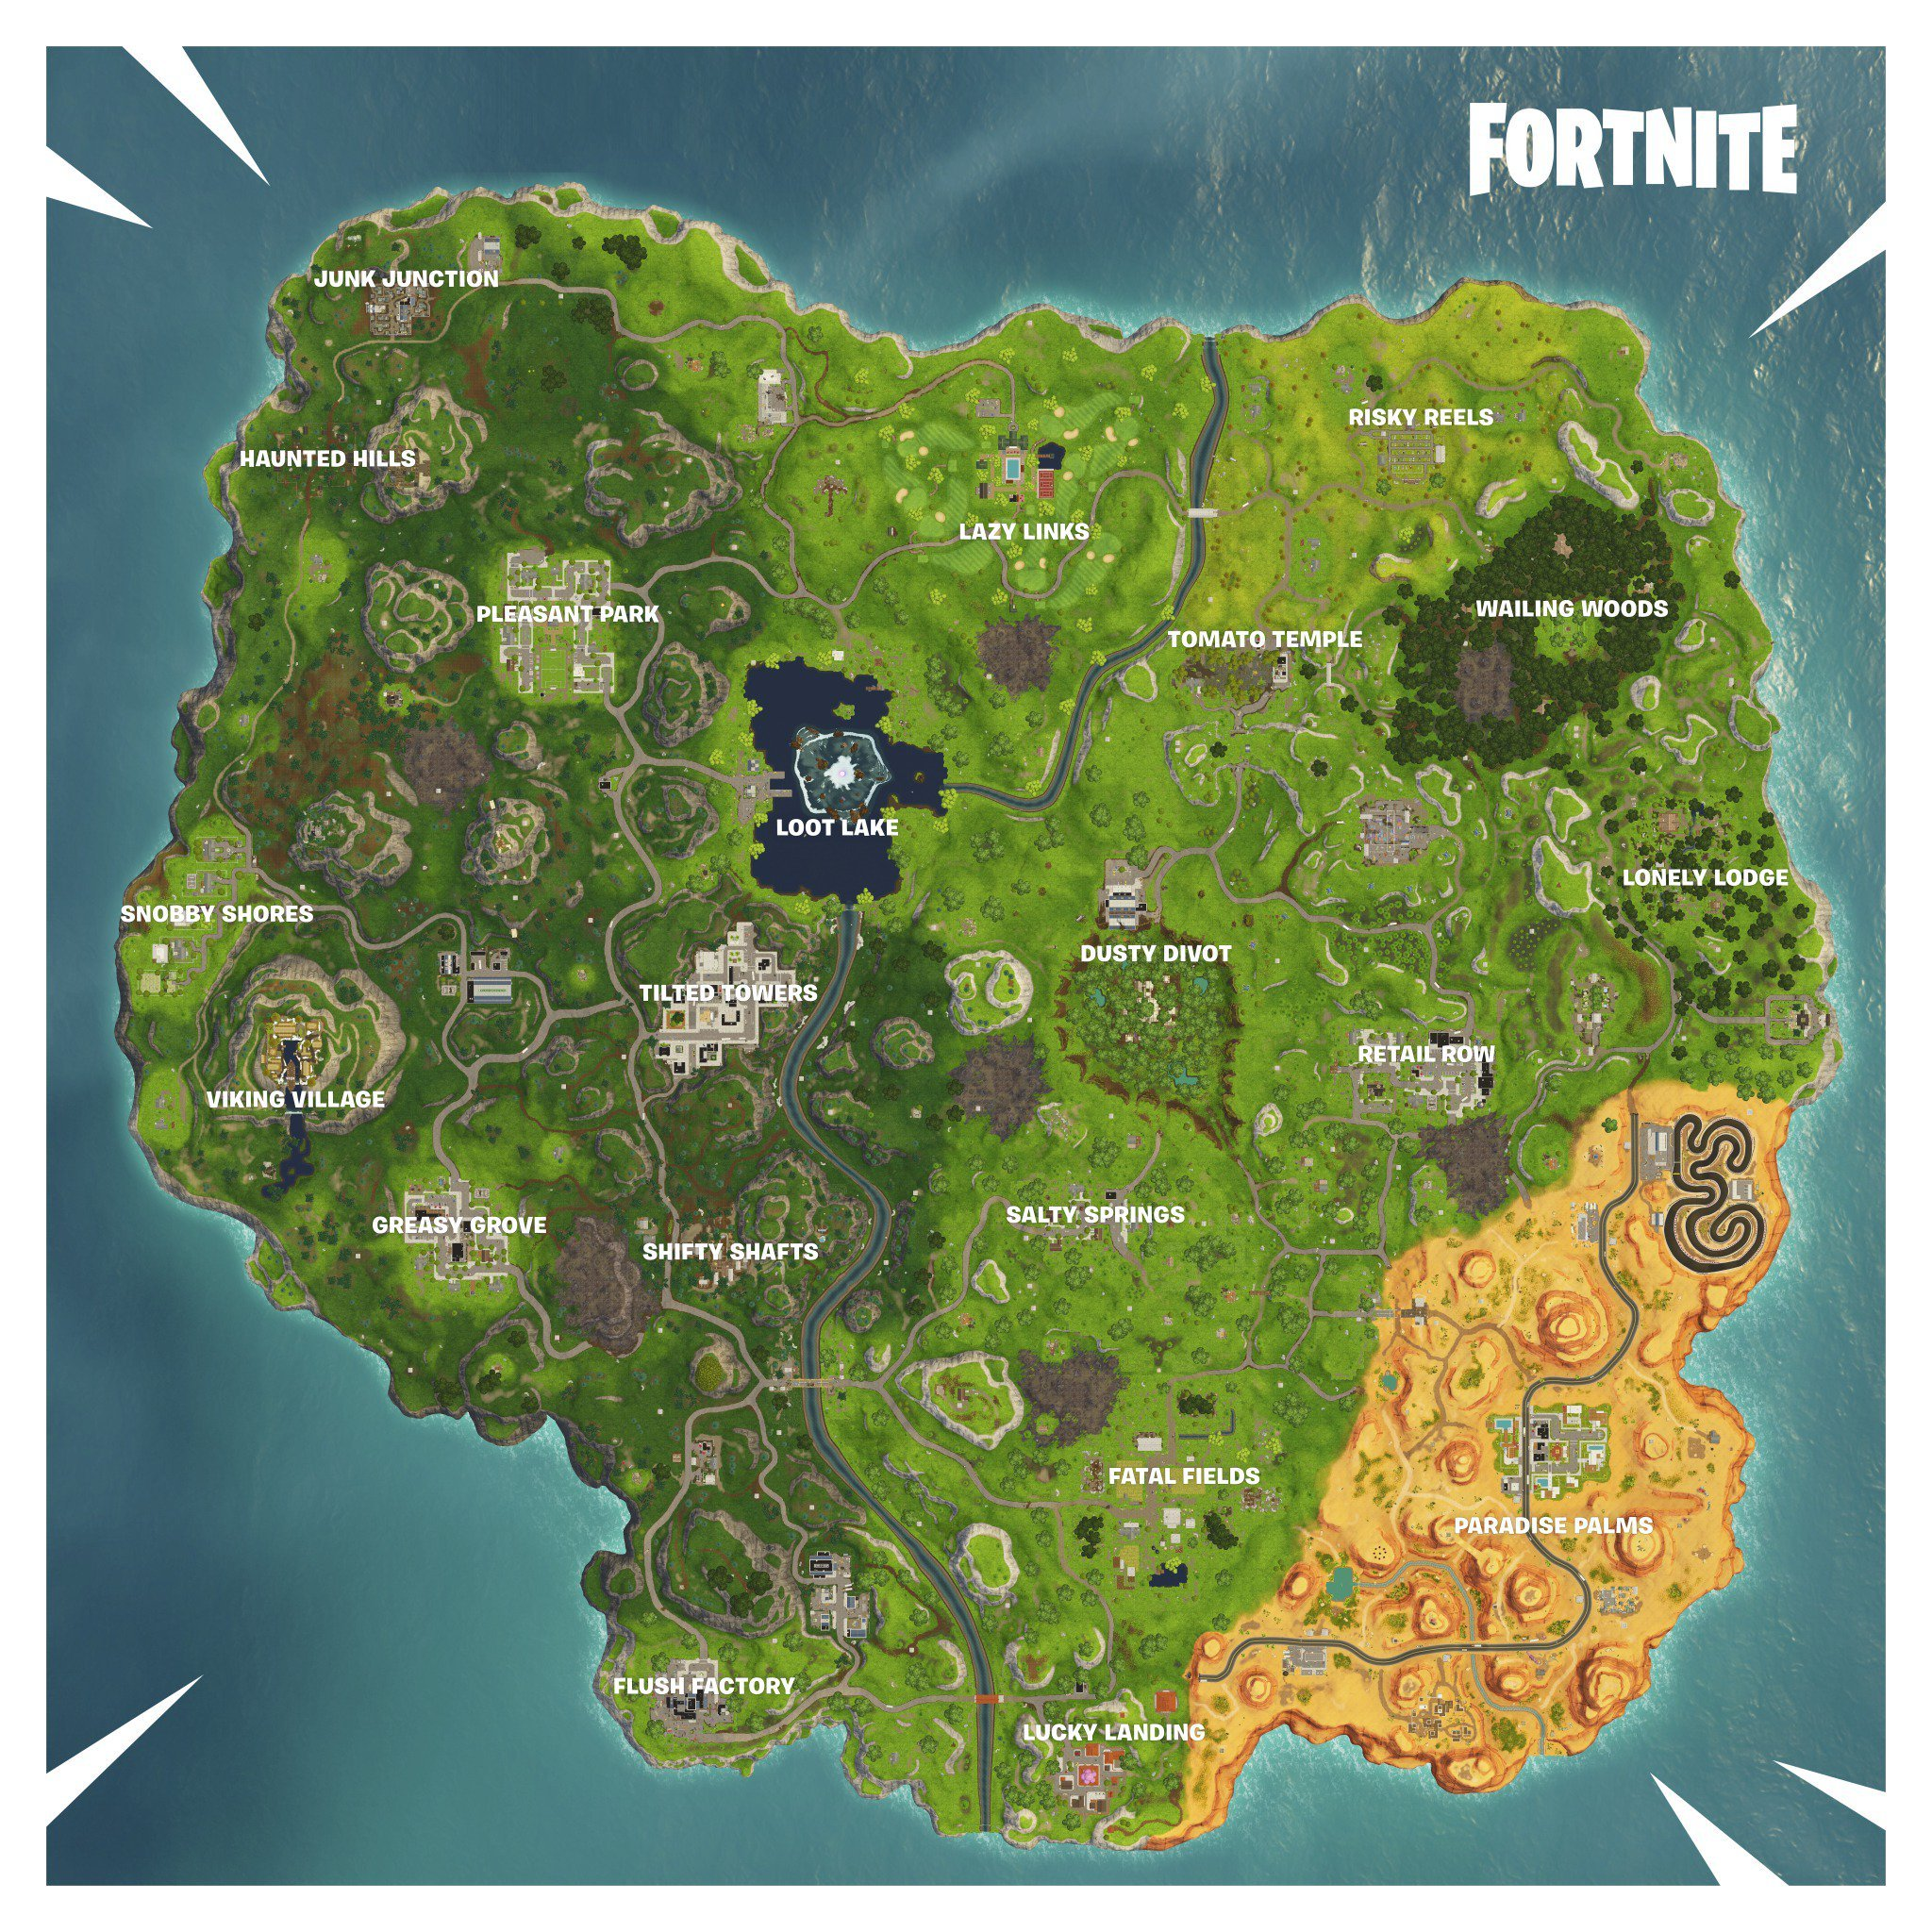 New Fortnite Season 6 Map Fortnite Insider